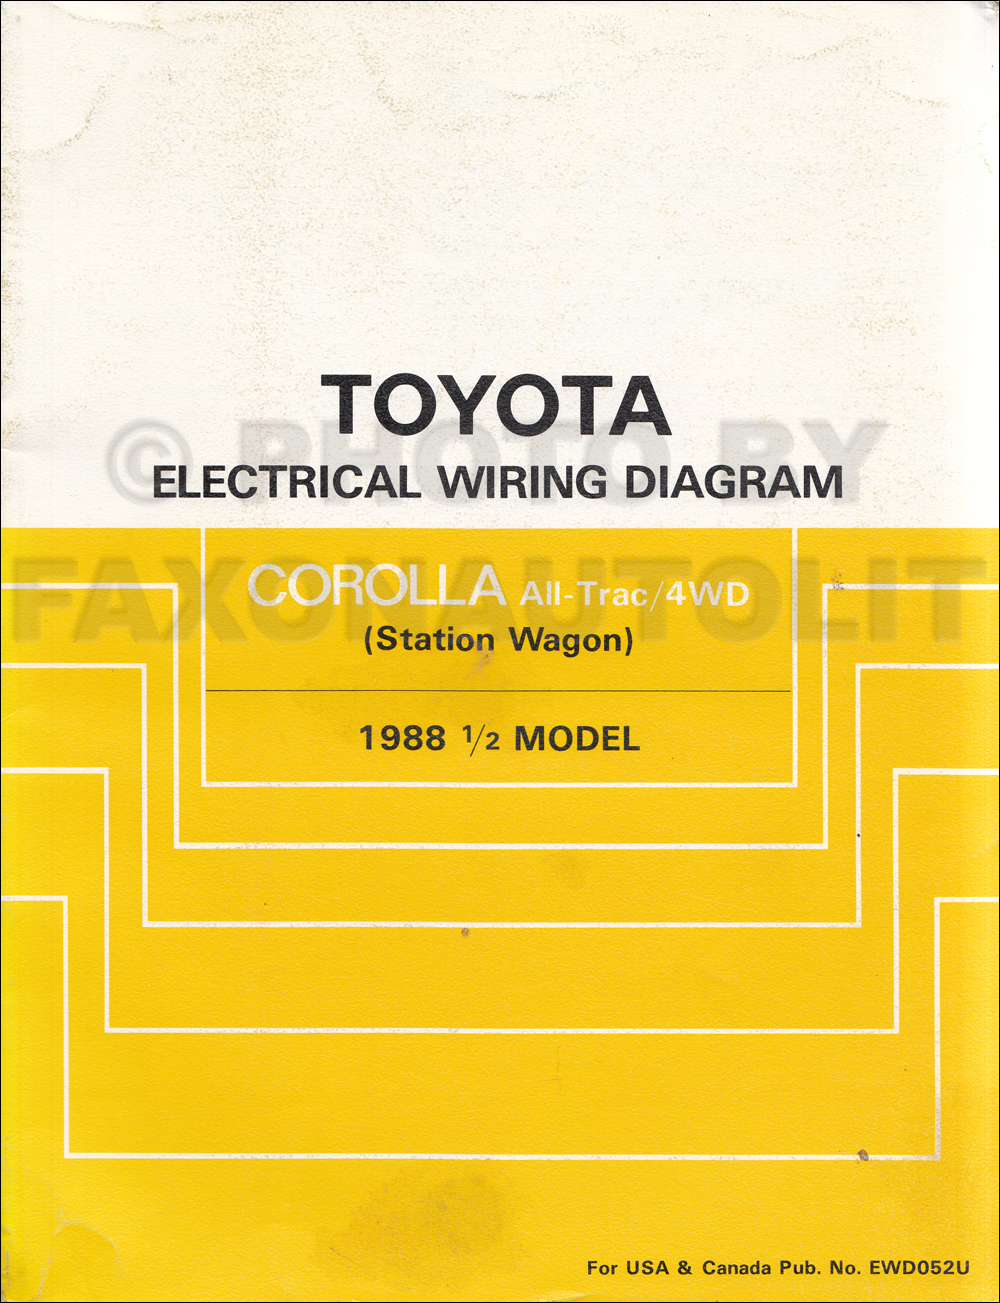 1988 Toyota Corolla All-Trac/4WD Station Wagon Wiring Diagram Manual  Original